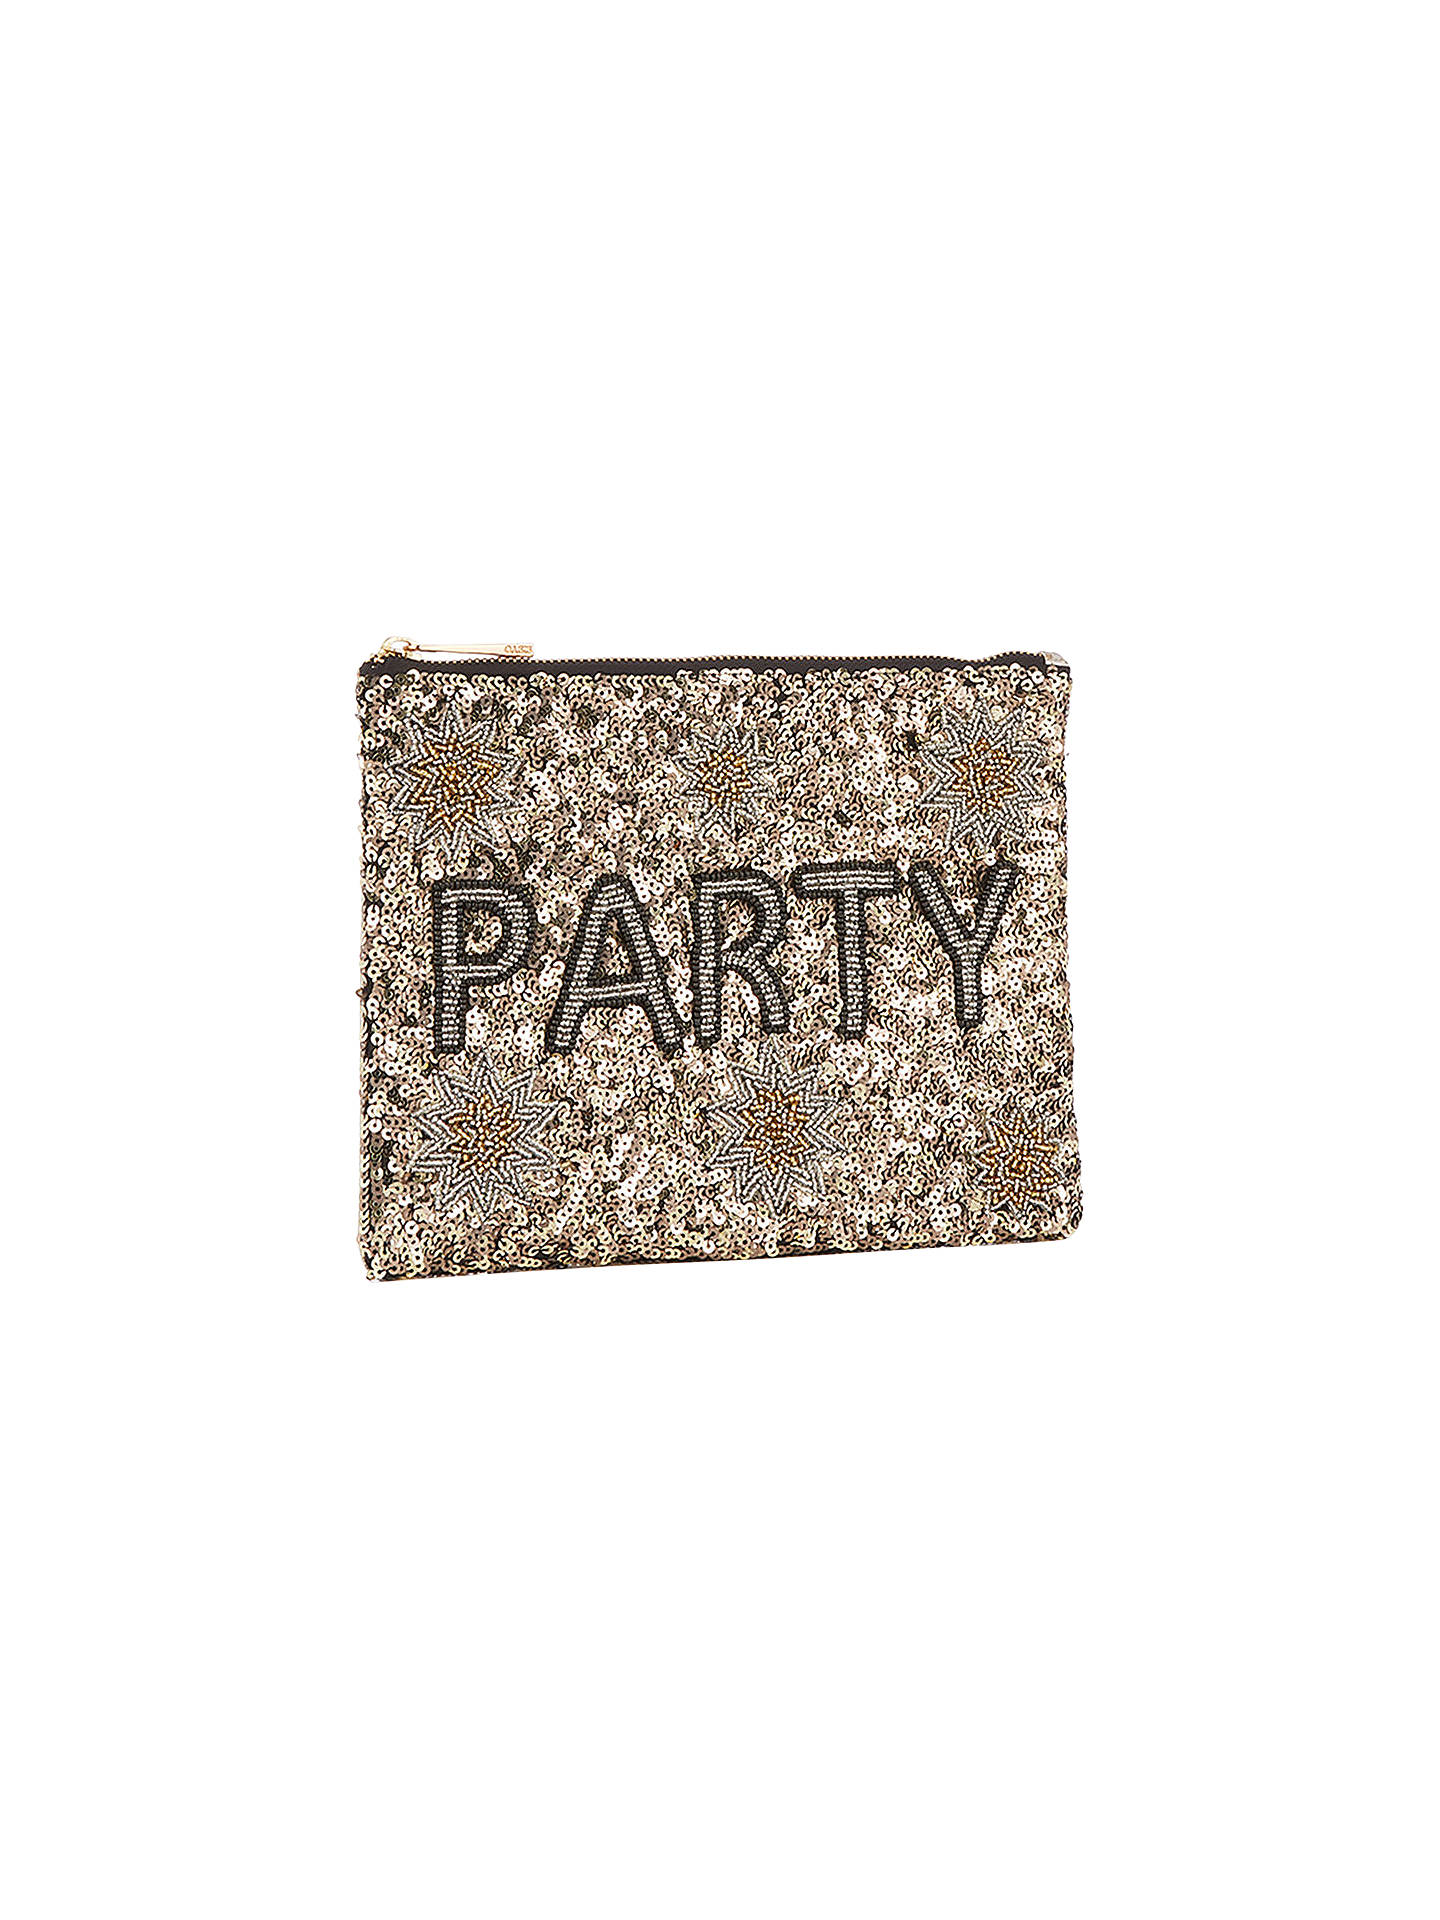 BuyOasis Party Zip Top Pouch, Multi Online at johnlewis.com